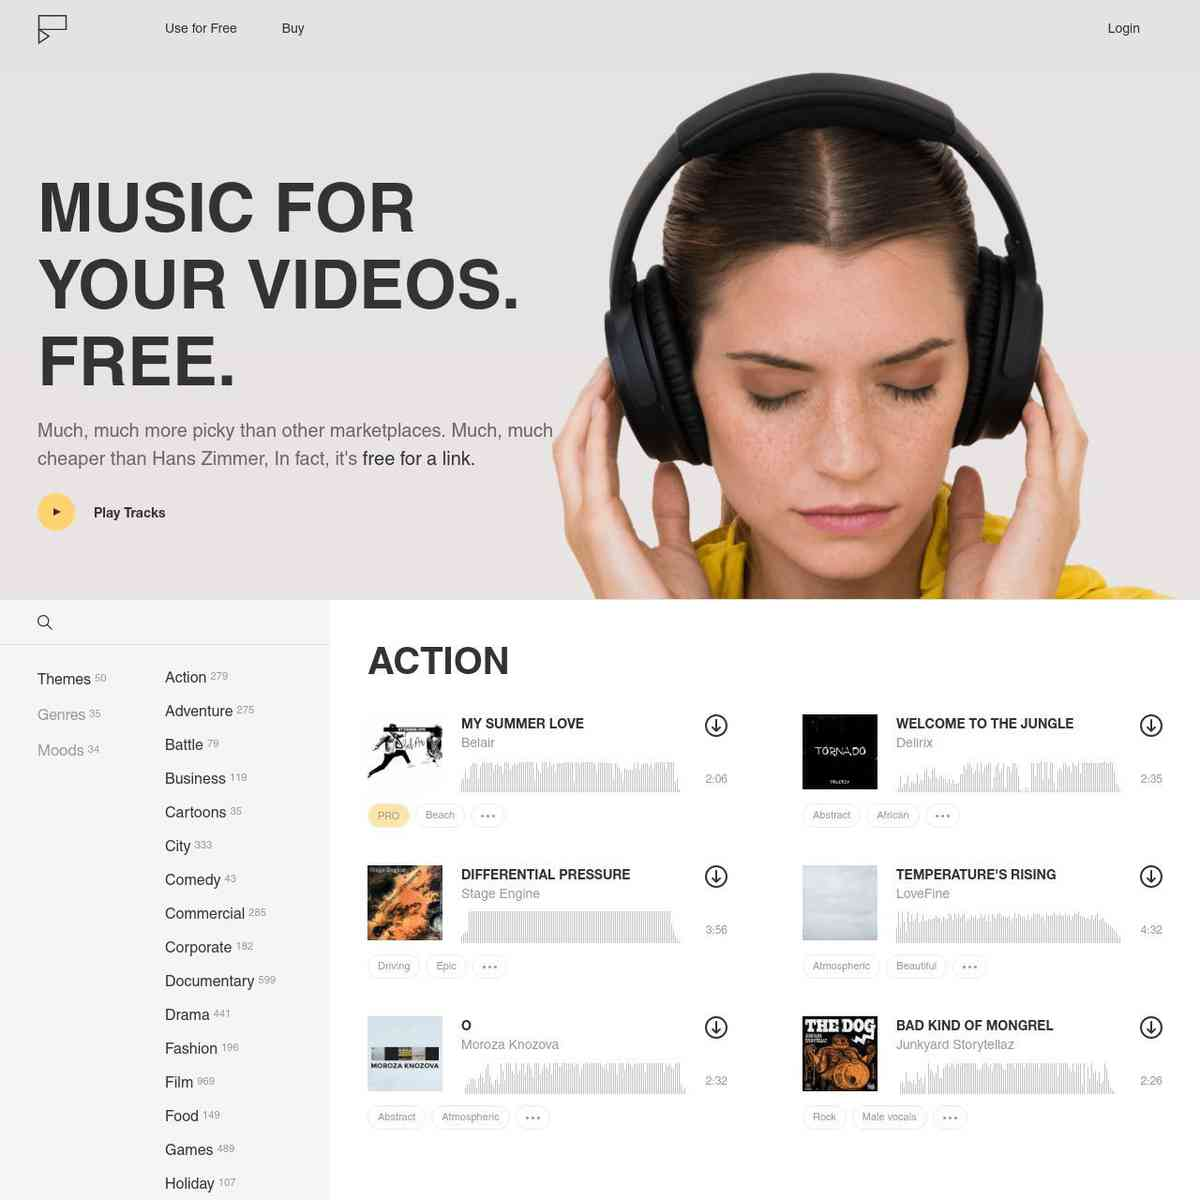 Fugue - free music for your videos